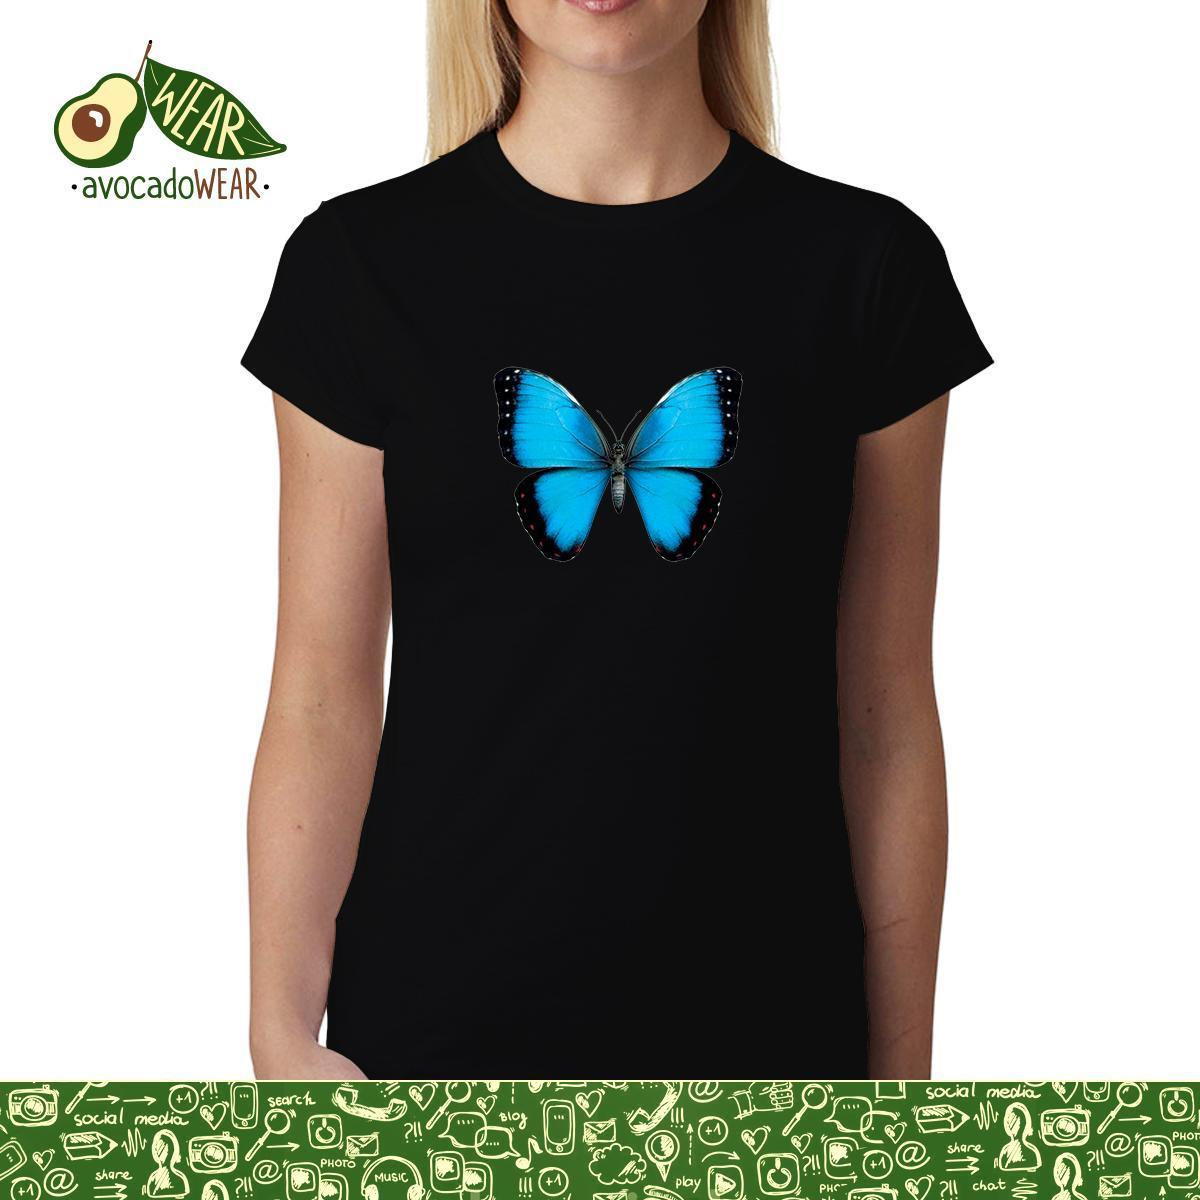 Blue Butterfly Animals Women  menT-shirt S-3XL NewT Shirts Tops Tee New Unisex Funny High Quality Casual Printing 100% Cotton